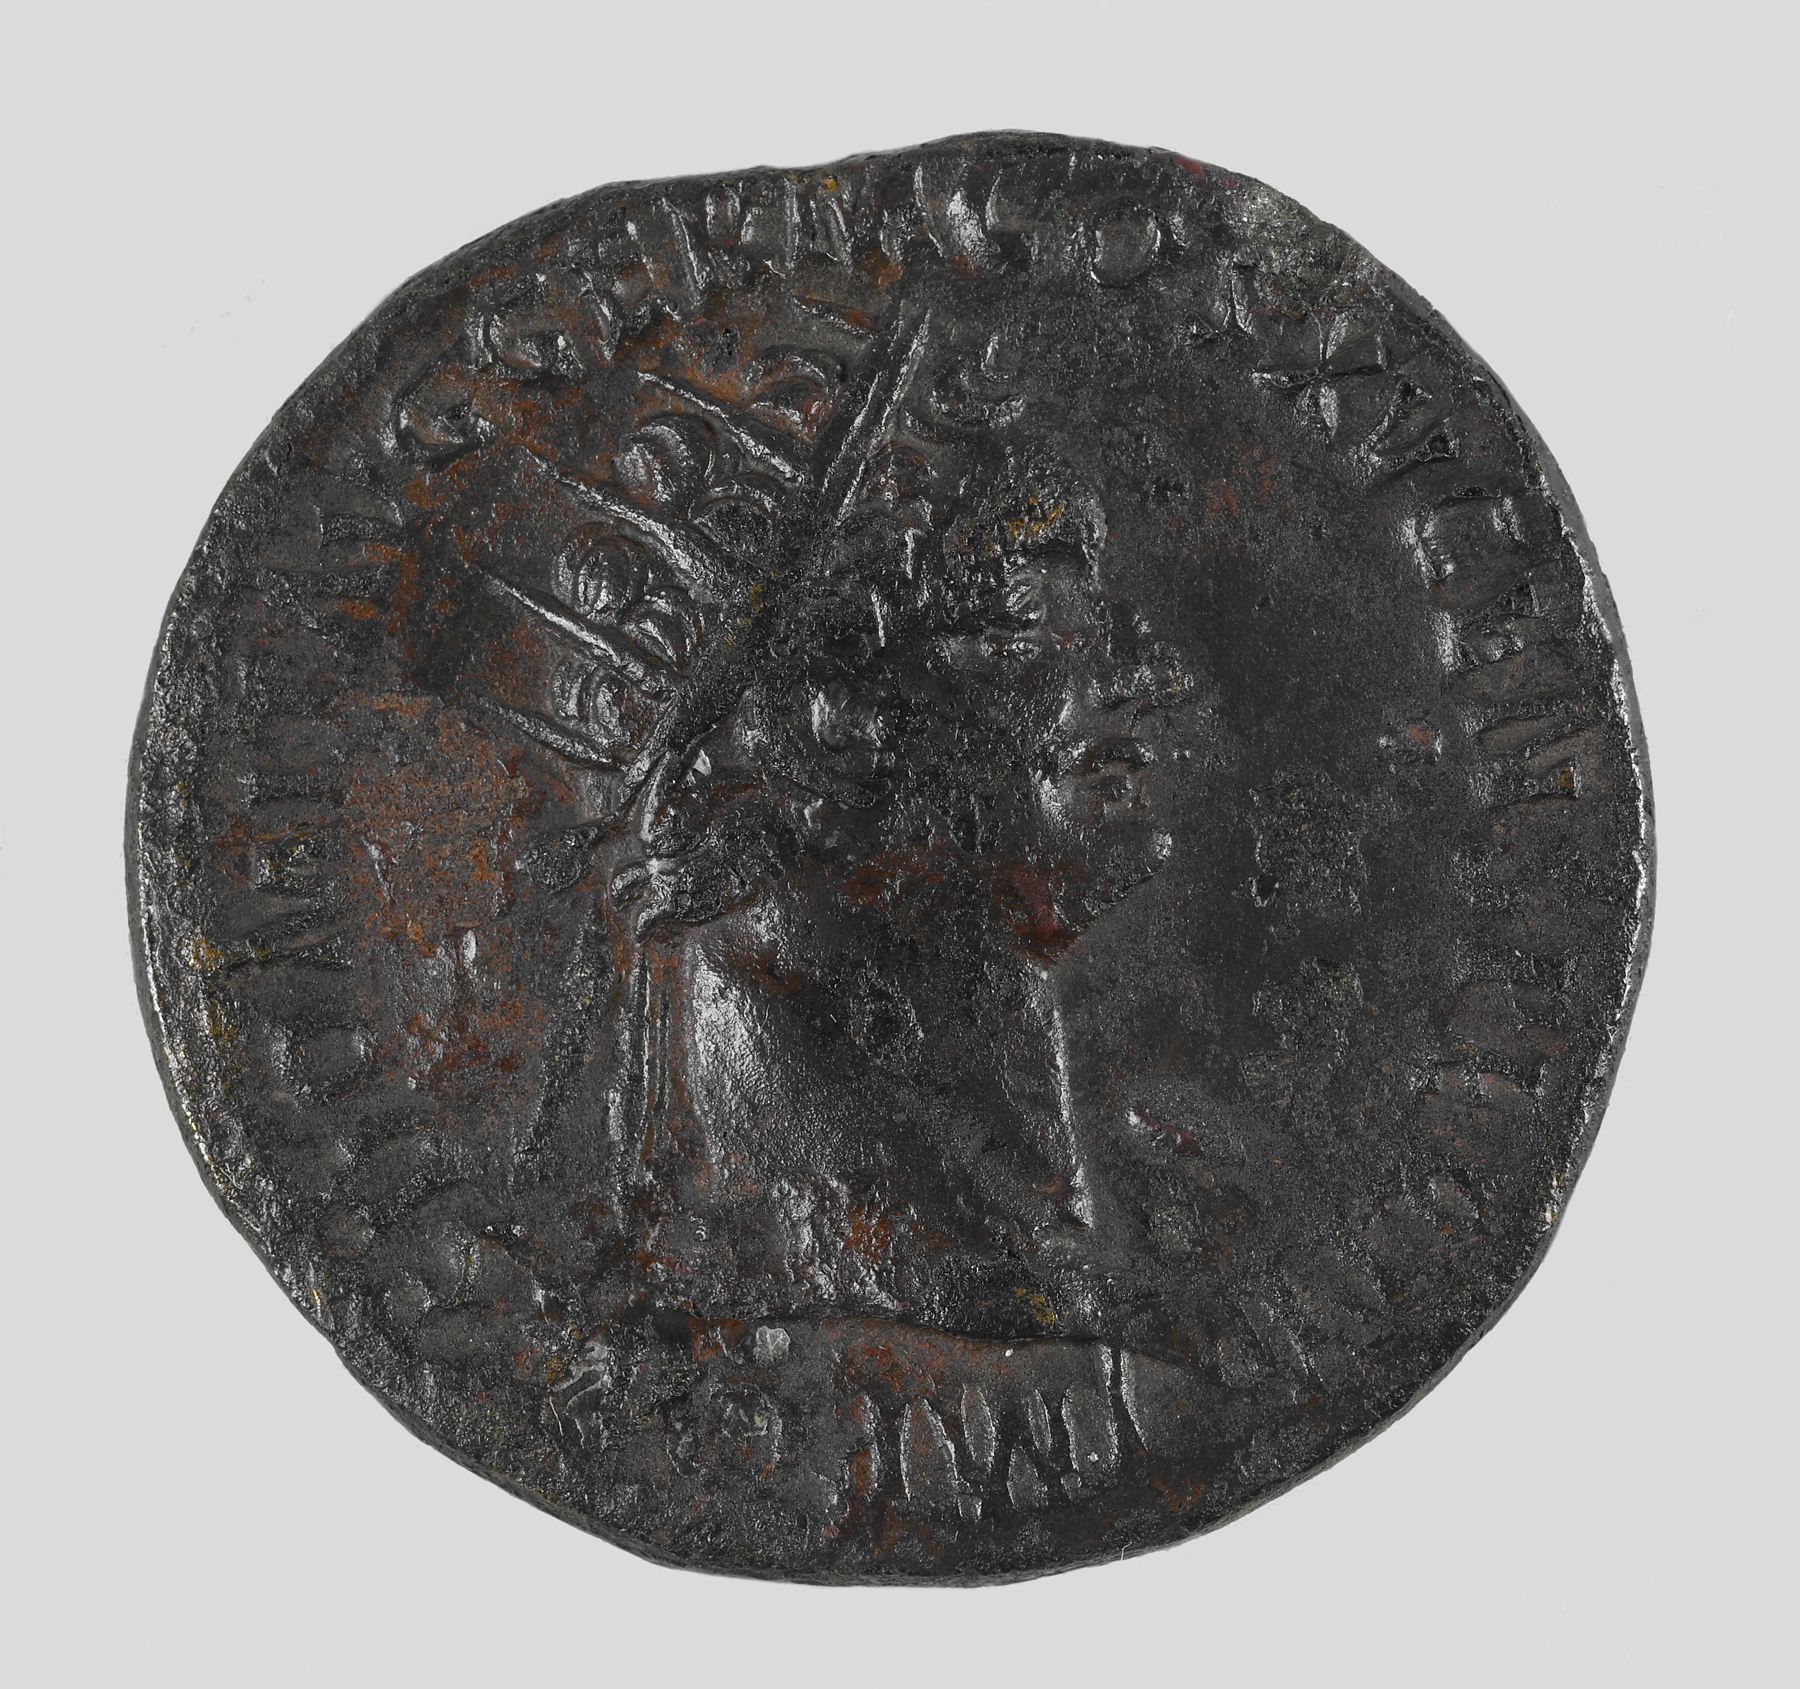 Coin with the Head of the Roman Emperor Domitian